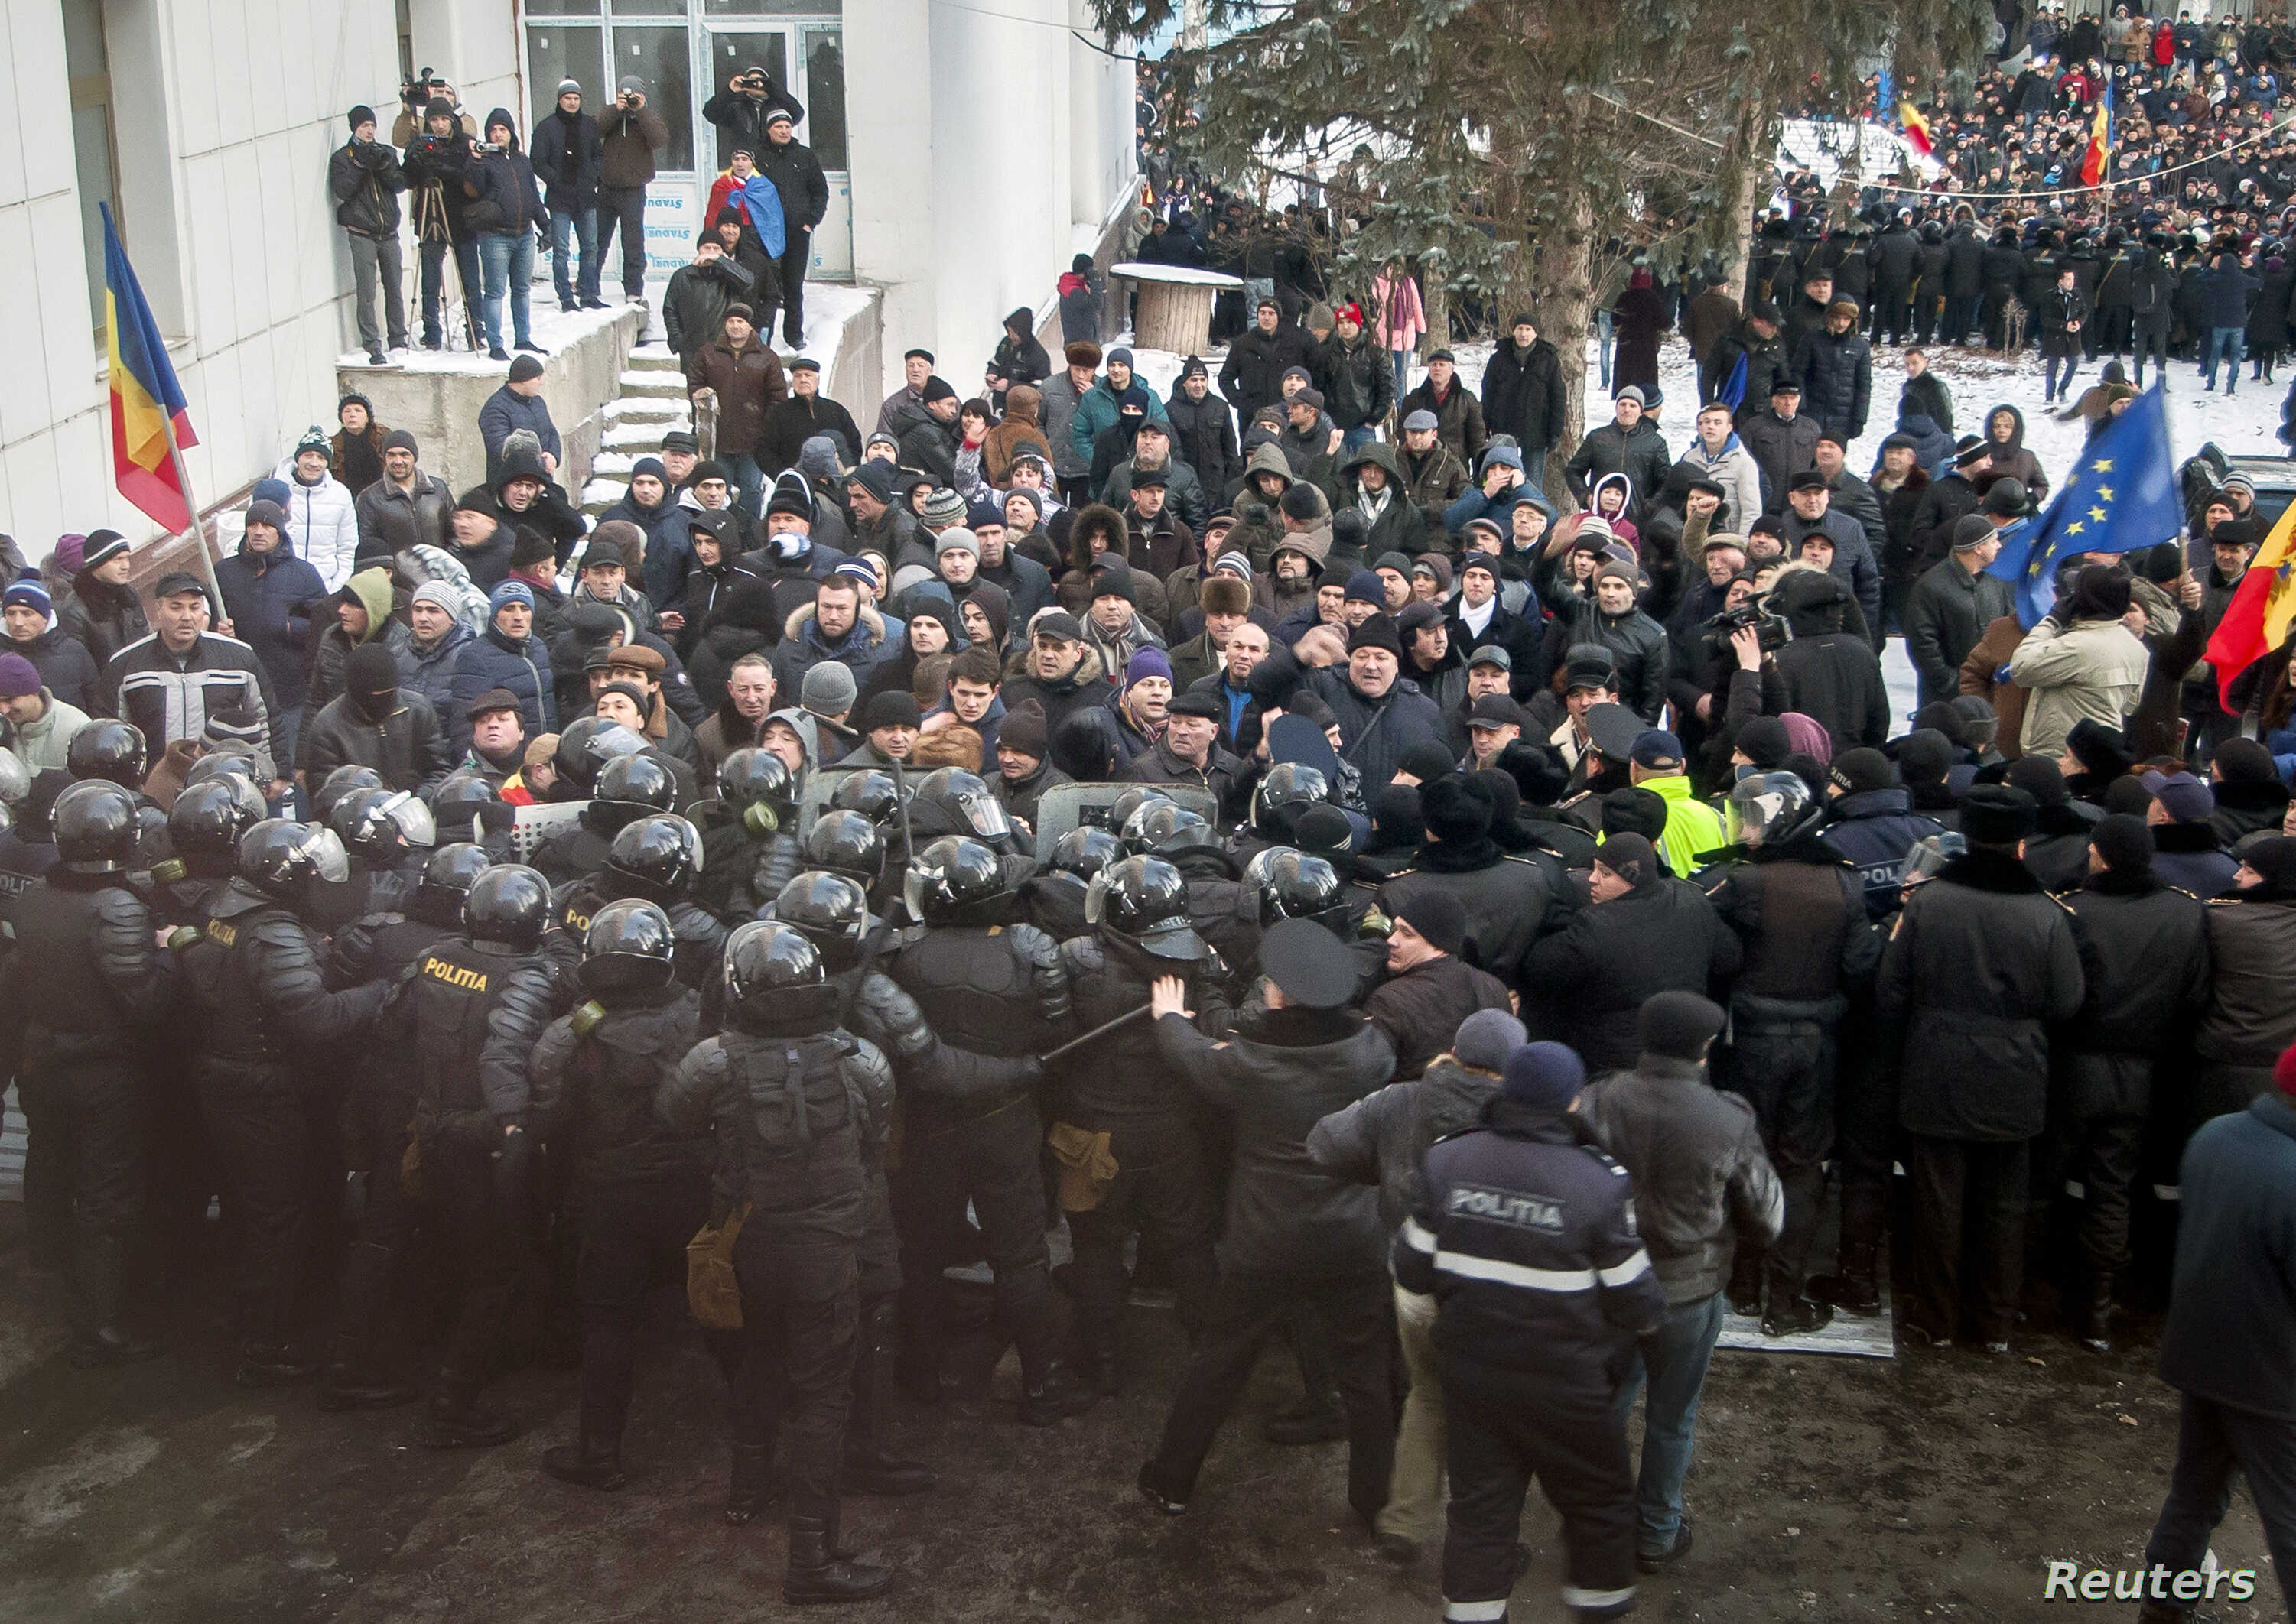 Protesters push a riot police line outside the parliament building in Chisinau, Moldova, Jan. 20, 2016. Hundreds of protesters broke through police lines on Wednesday to get into Moldova's parliament after it voted in a new prime minister.